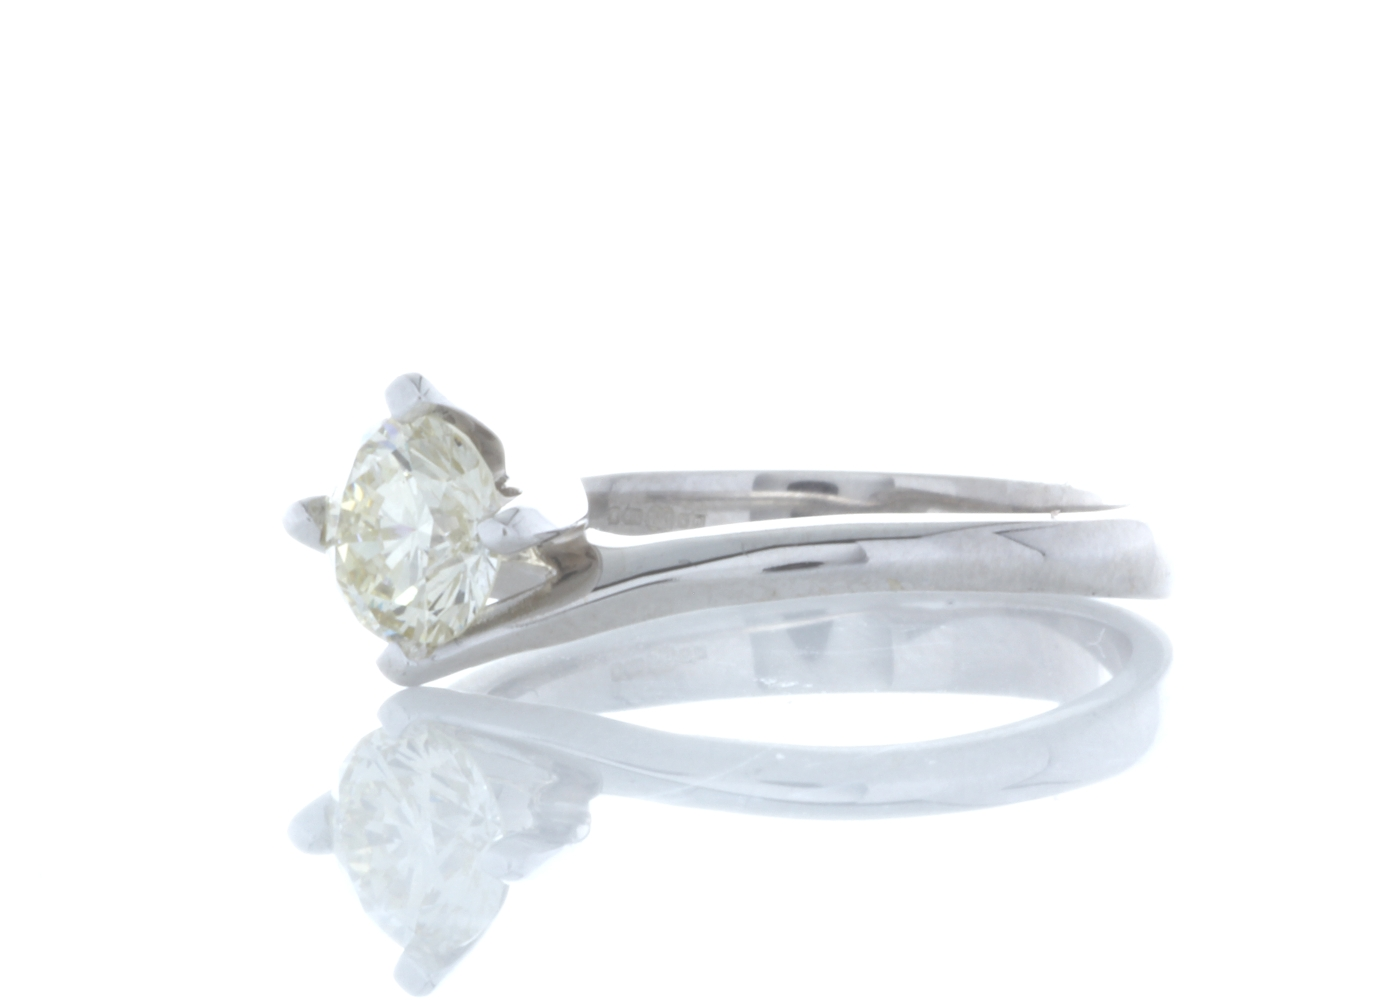 18ct White Gold Single Stone Fancy Claw Set Diamond Ring 0.71 Carats - Image 2 of 5